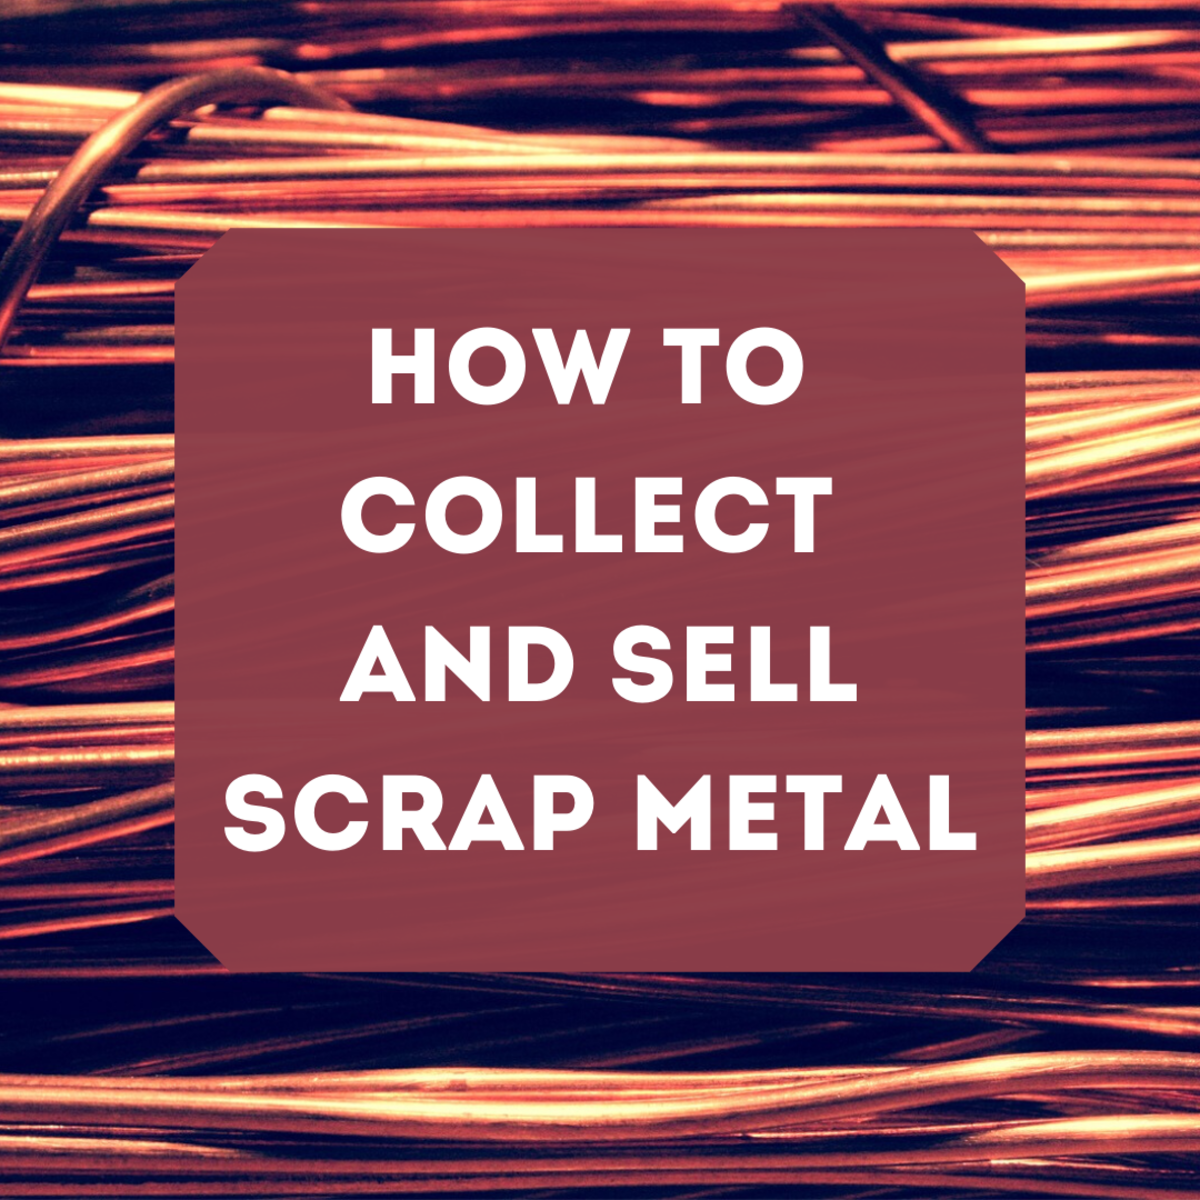 Getting the Best Price for Scrap Copper, Aluminum, and Brass